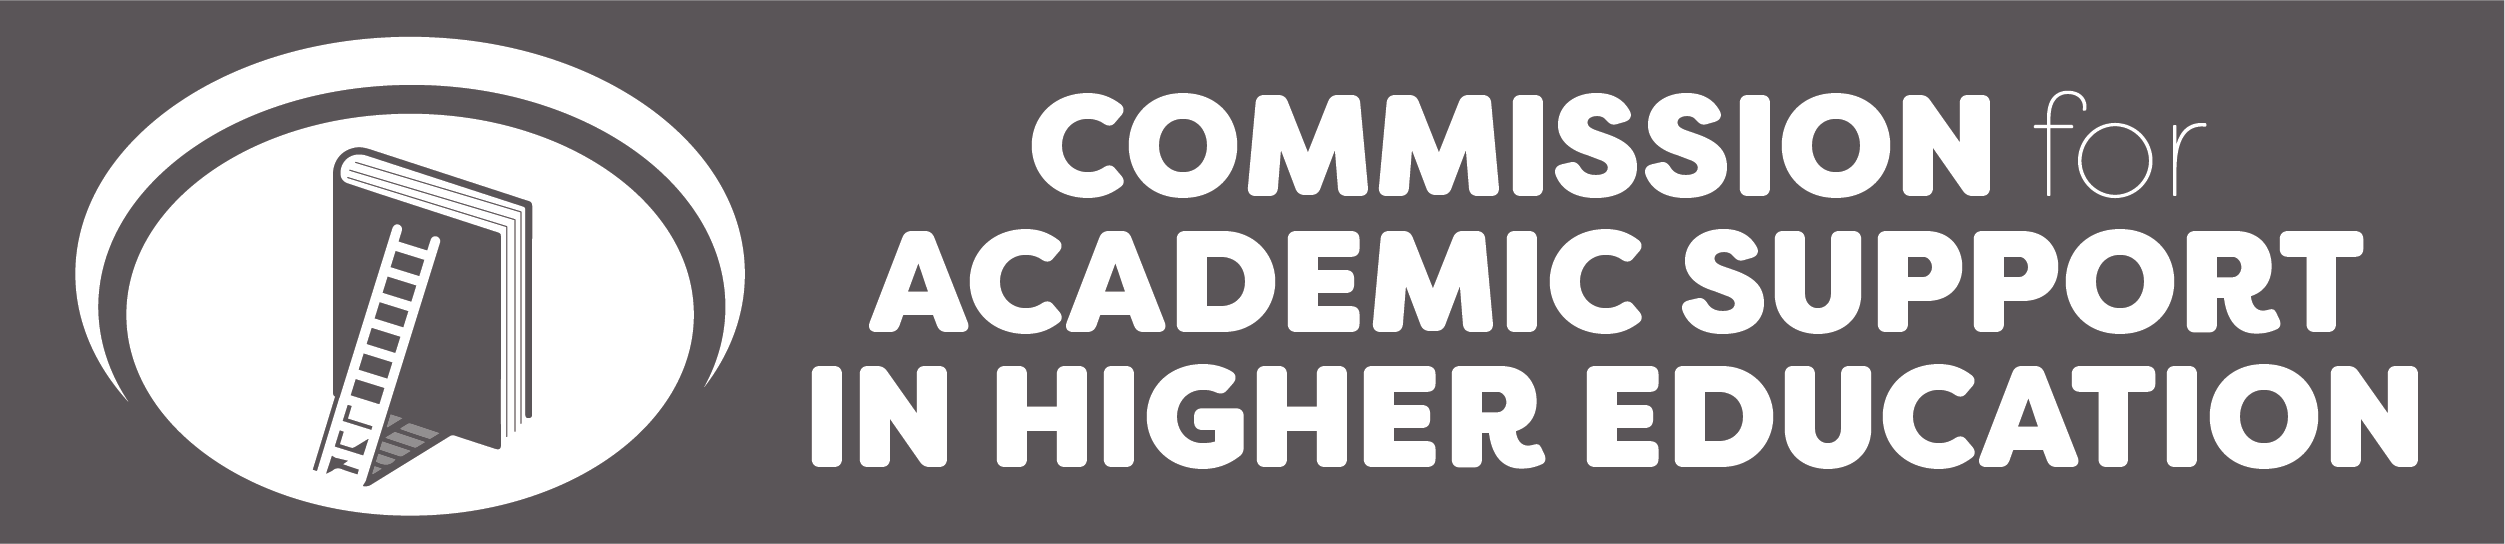 Commission for Academic Support in Higher Education logo